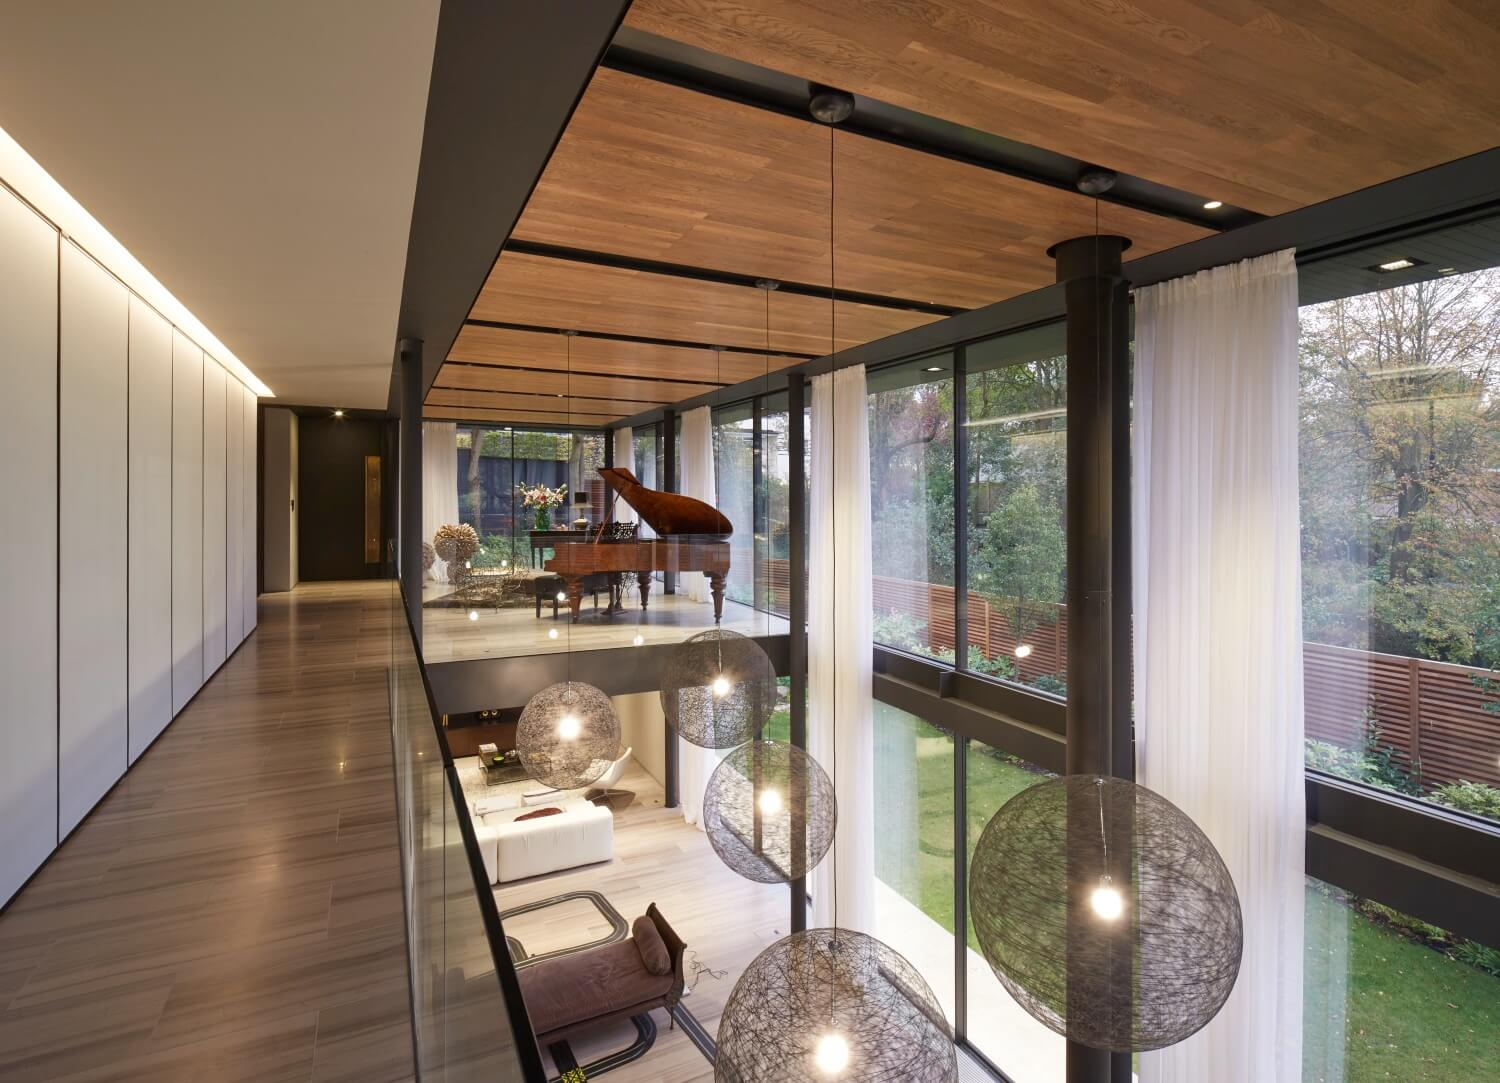 Here's the upper floor view of the massive living room below and smaller area above, holding a grand piano in full view of the surrounding woods.